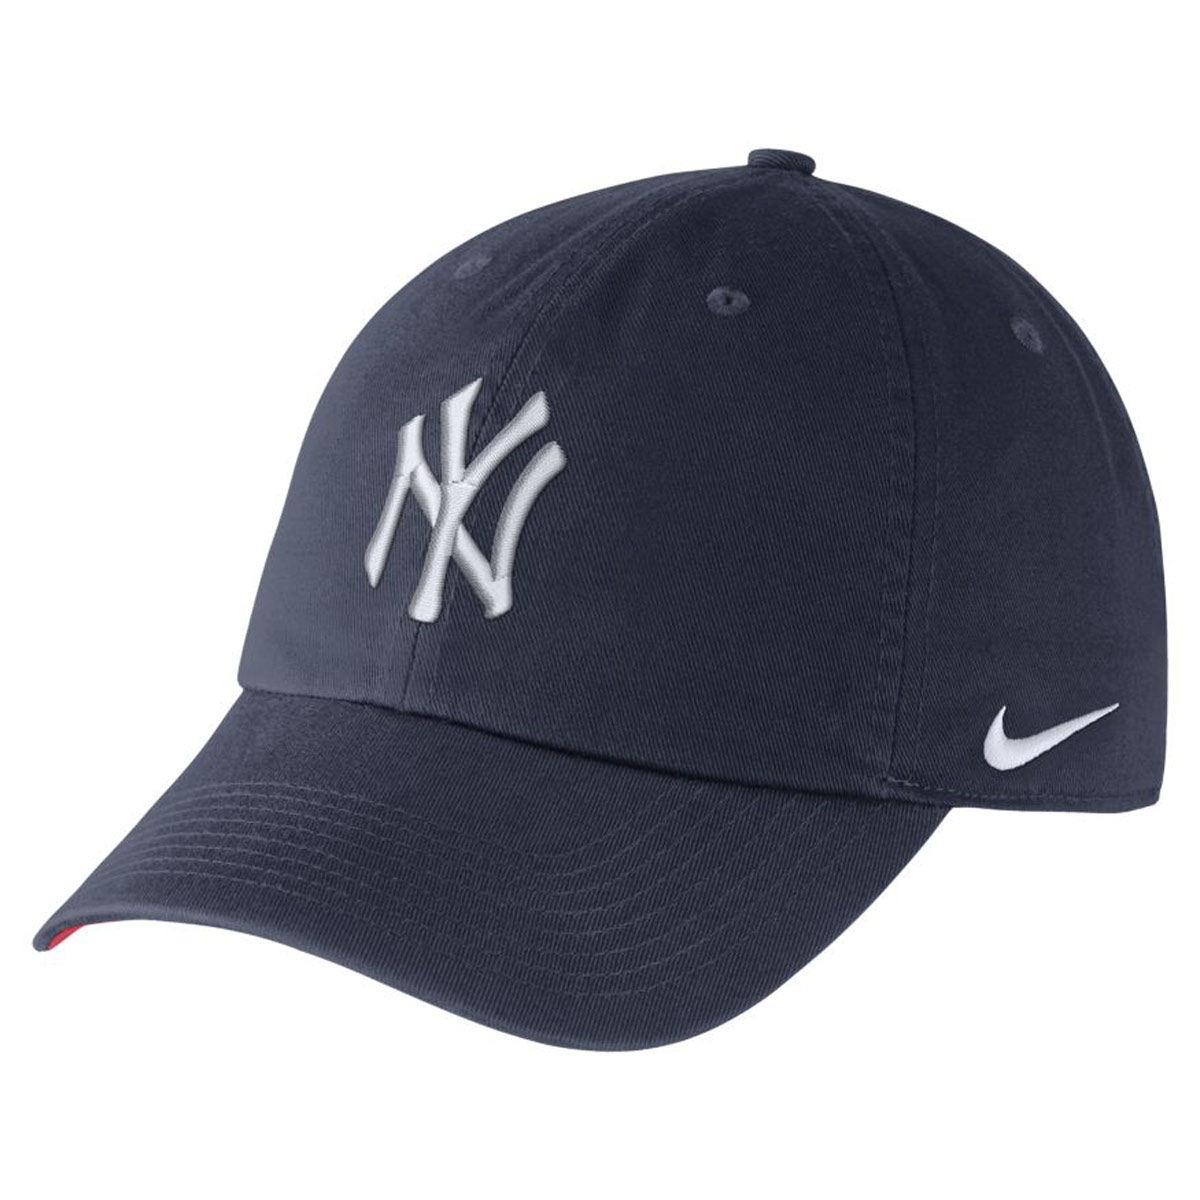 New York Yankees Adult Heritage 4th Of July Hat